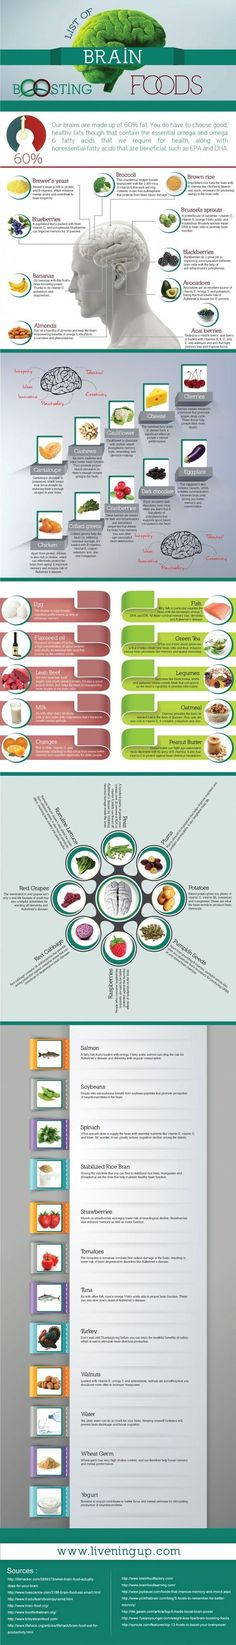 60 Brain Boosting Foods For Memory And Cognitive Function food memory brain healthy health healthy food healthy living eating self improvement self help